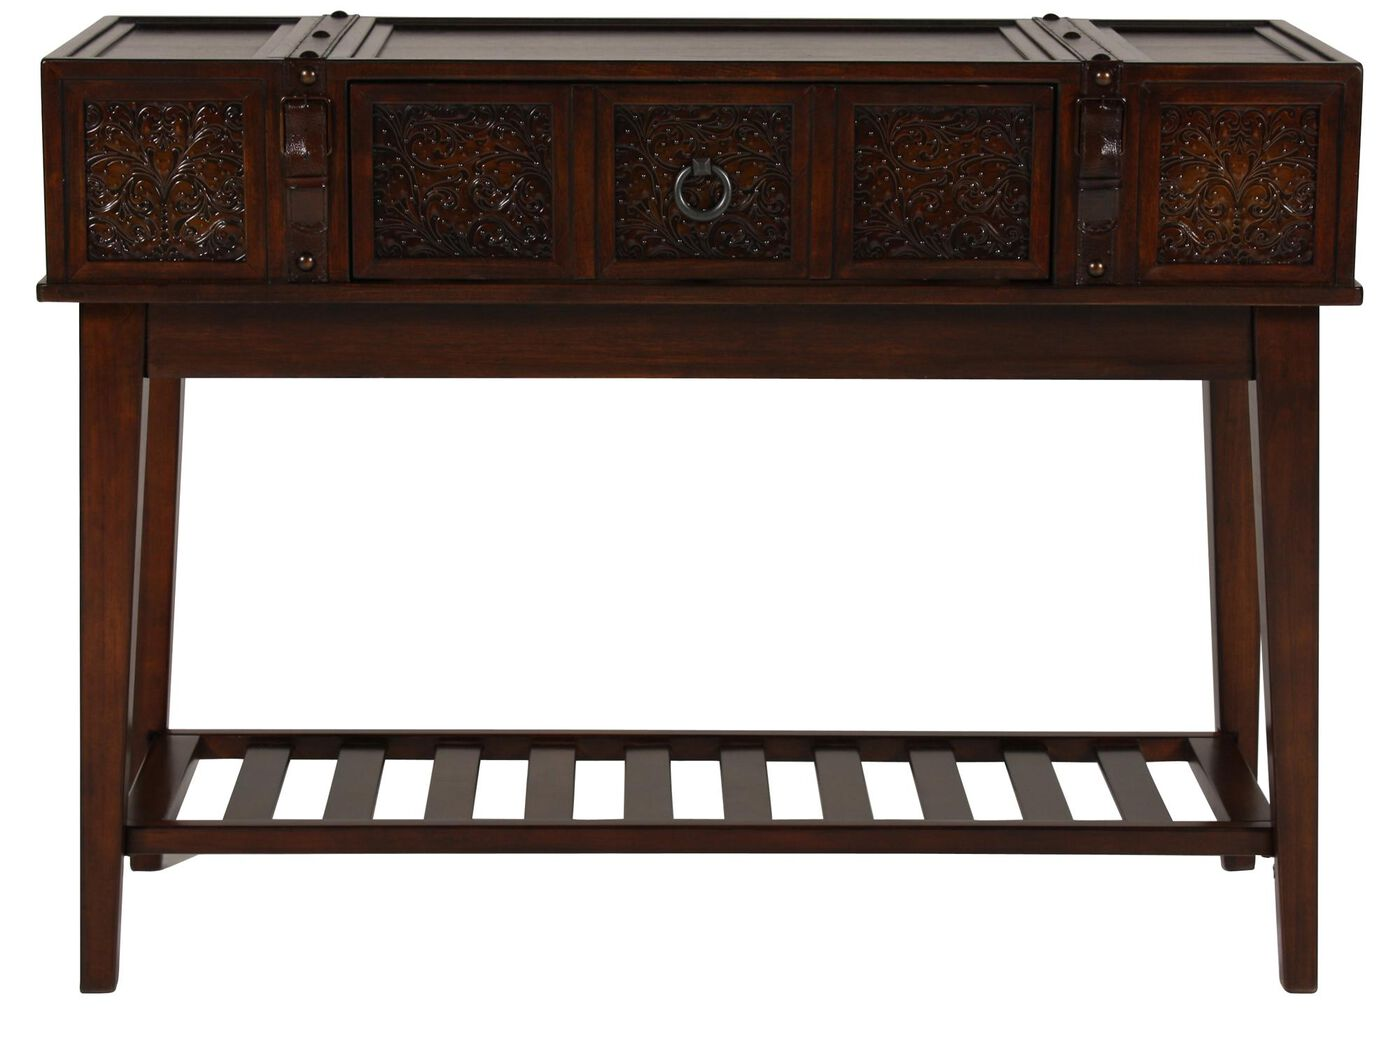 Stamped Insets Traditional Console Table in Brown Mathis  : ASH T7530474 from www.mathisbrothers.com size 1333 x 1000 jpeg 98kB